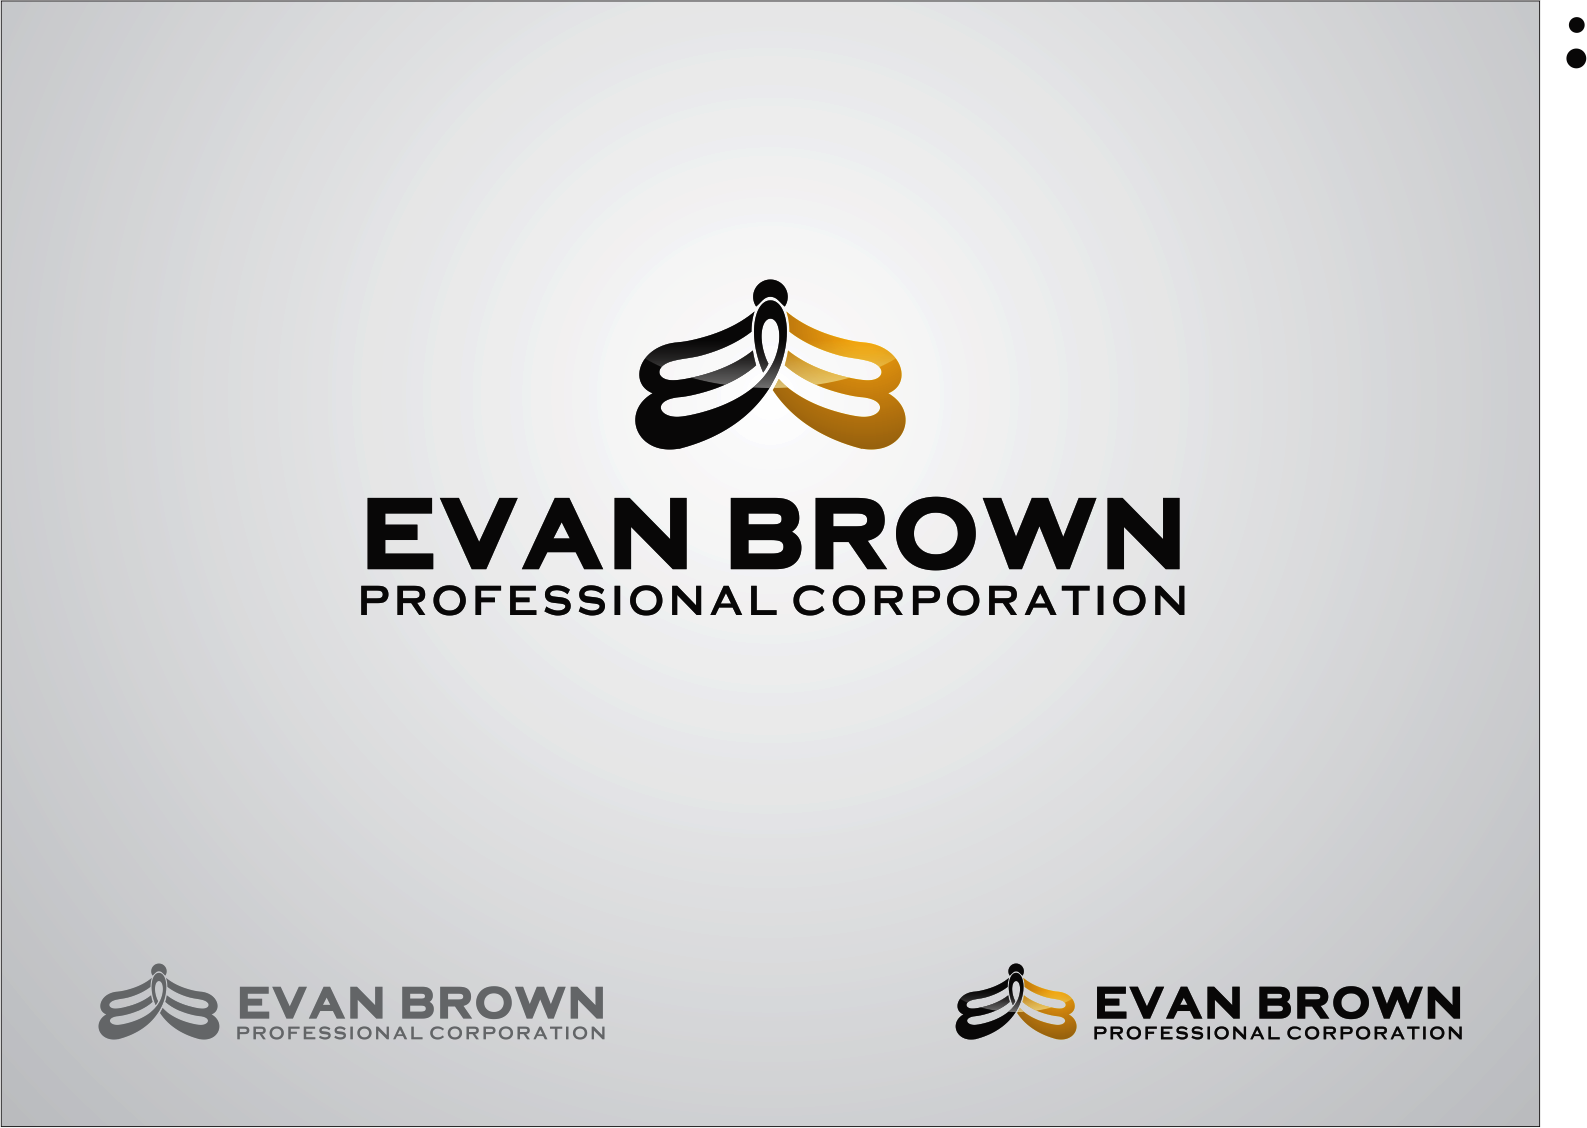 Logo Design by Armada Jamaluddin - Entry No. 101 in the Logo Design Contest Inspiring Logo Design for Evan Brown Professional Corporation.